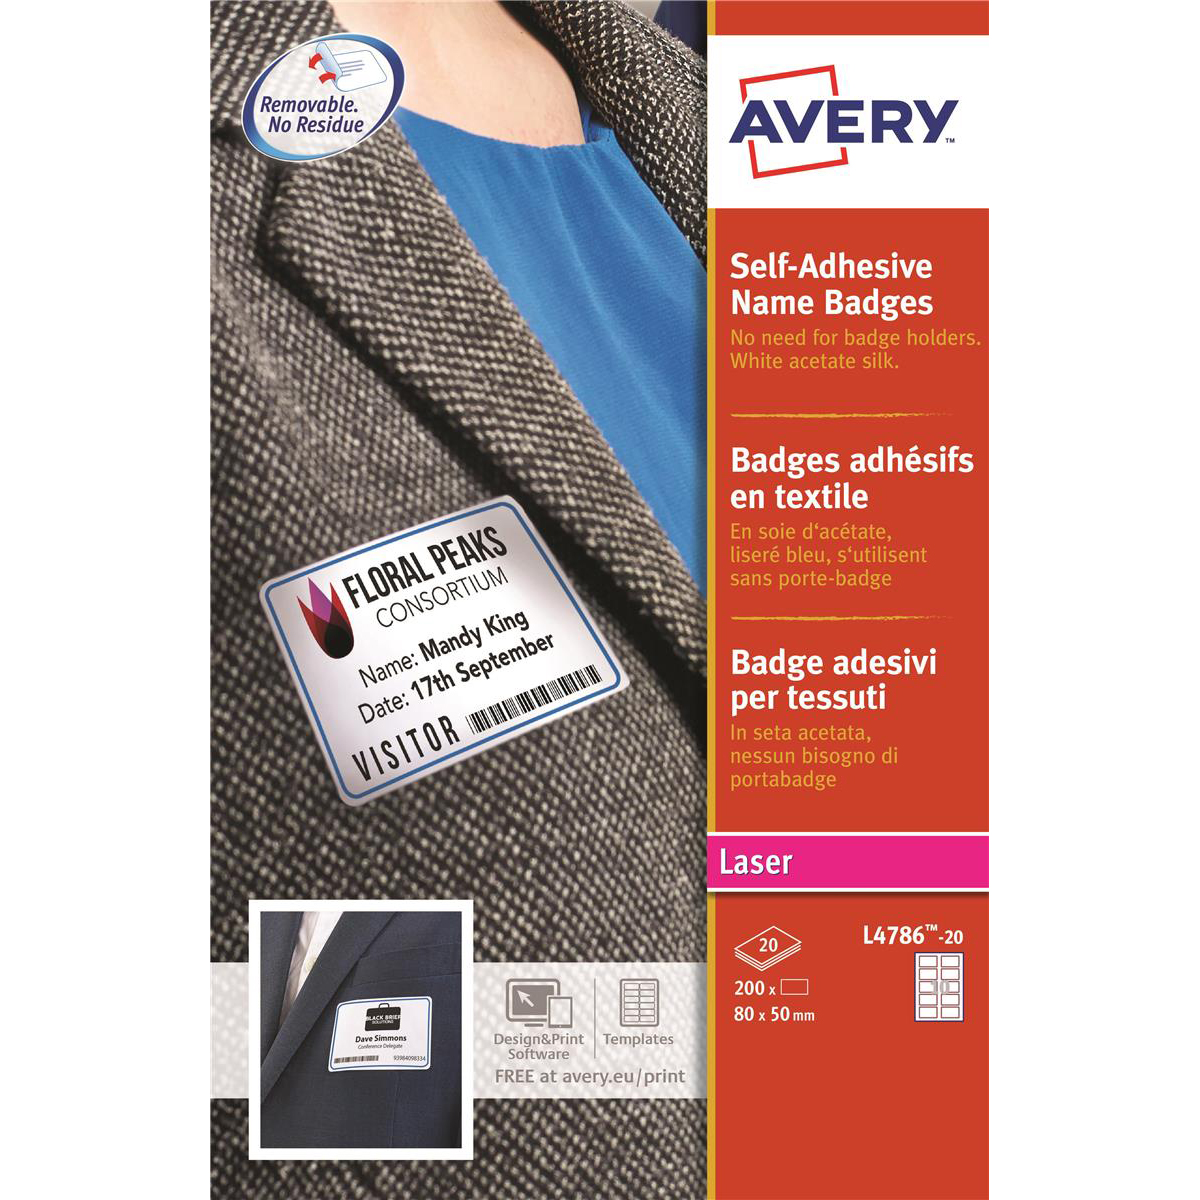 Avery Name Badge Labels Laser Self-adhesive 80x50mm Red Border Ref L4786-20 200 Labels